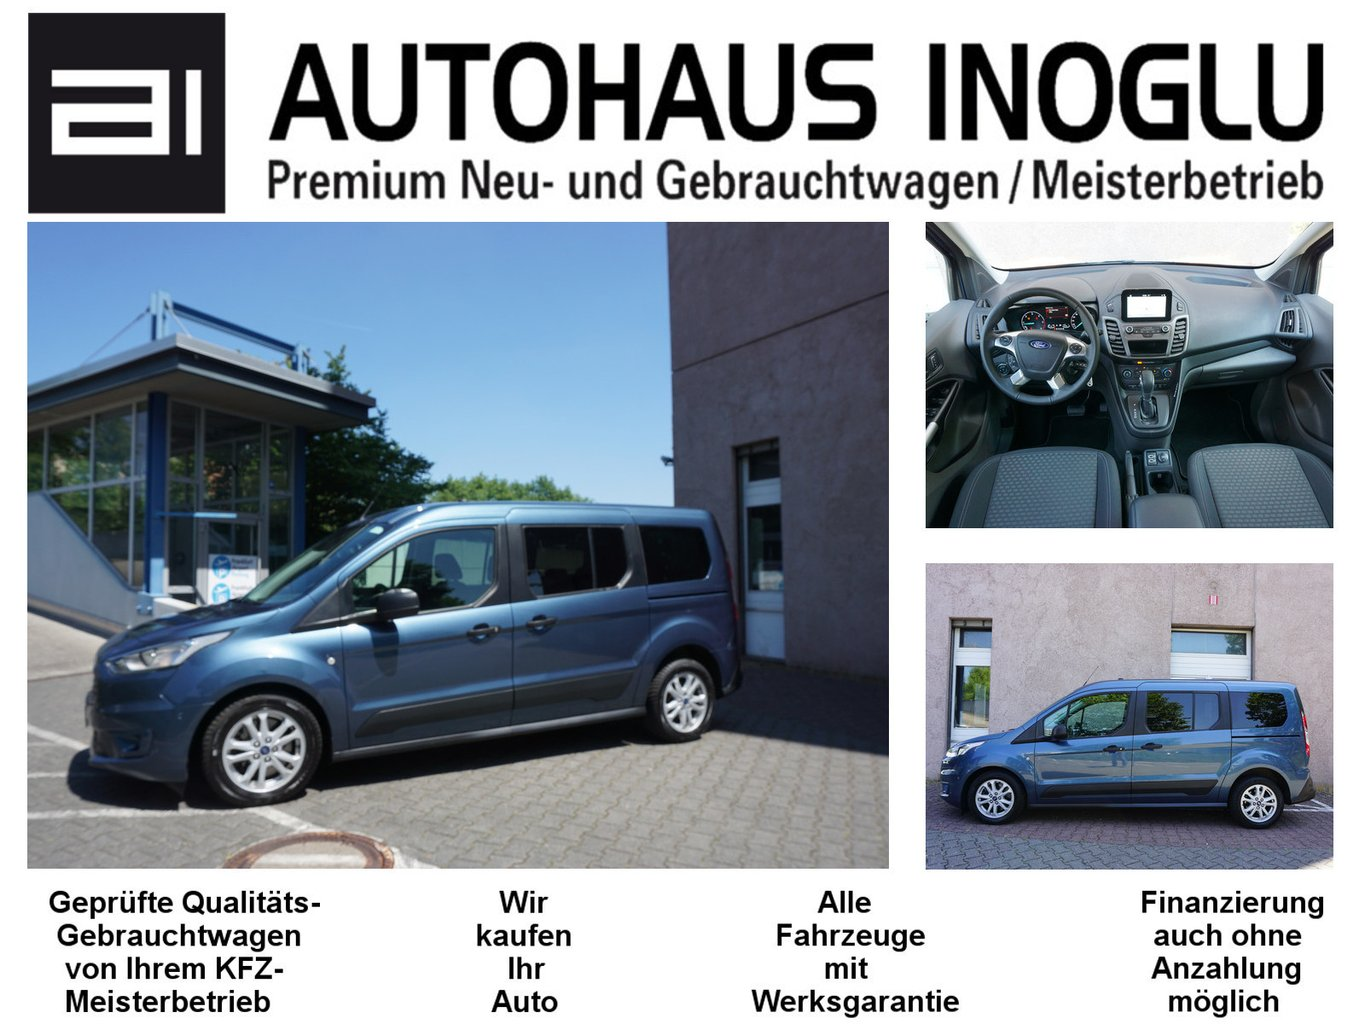 Ford Grand Tourneo Connect 1.5 Aut.7Sitz Navi E6dTemp, Jahr 2019, Diesel